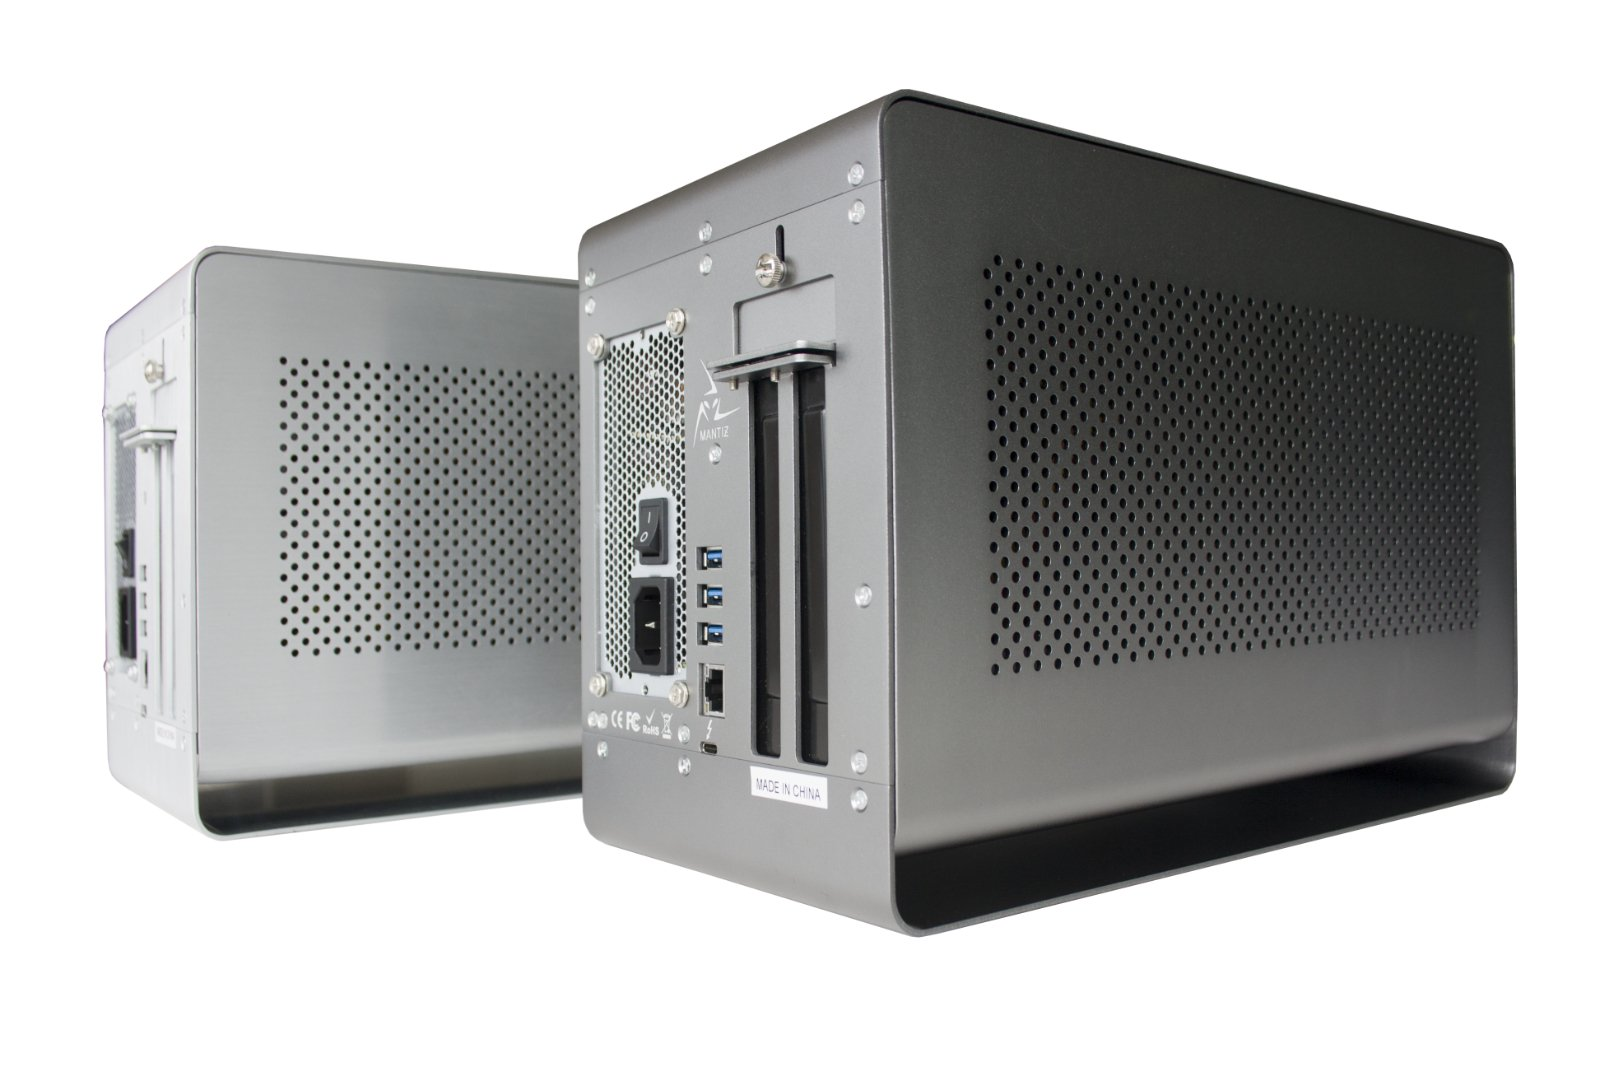 10 Cheapest Thunderbolt 3 eGPU Enclosures (Reviewed December